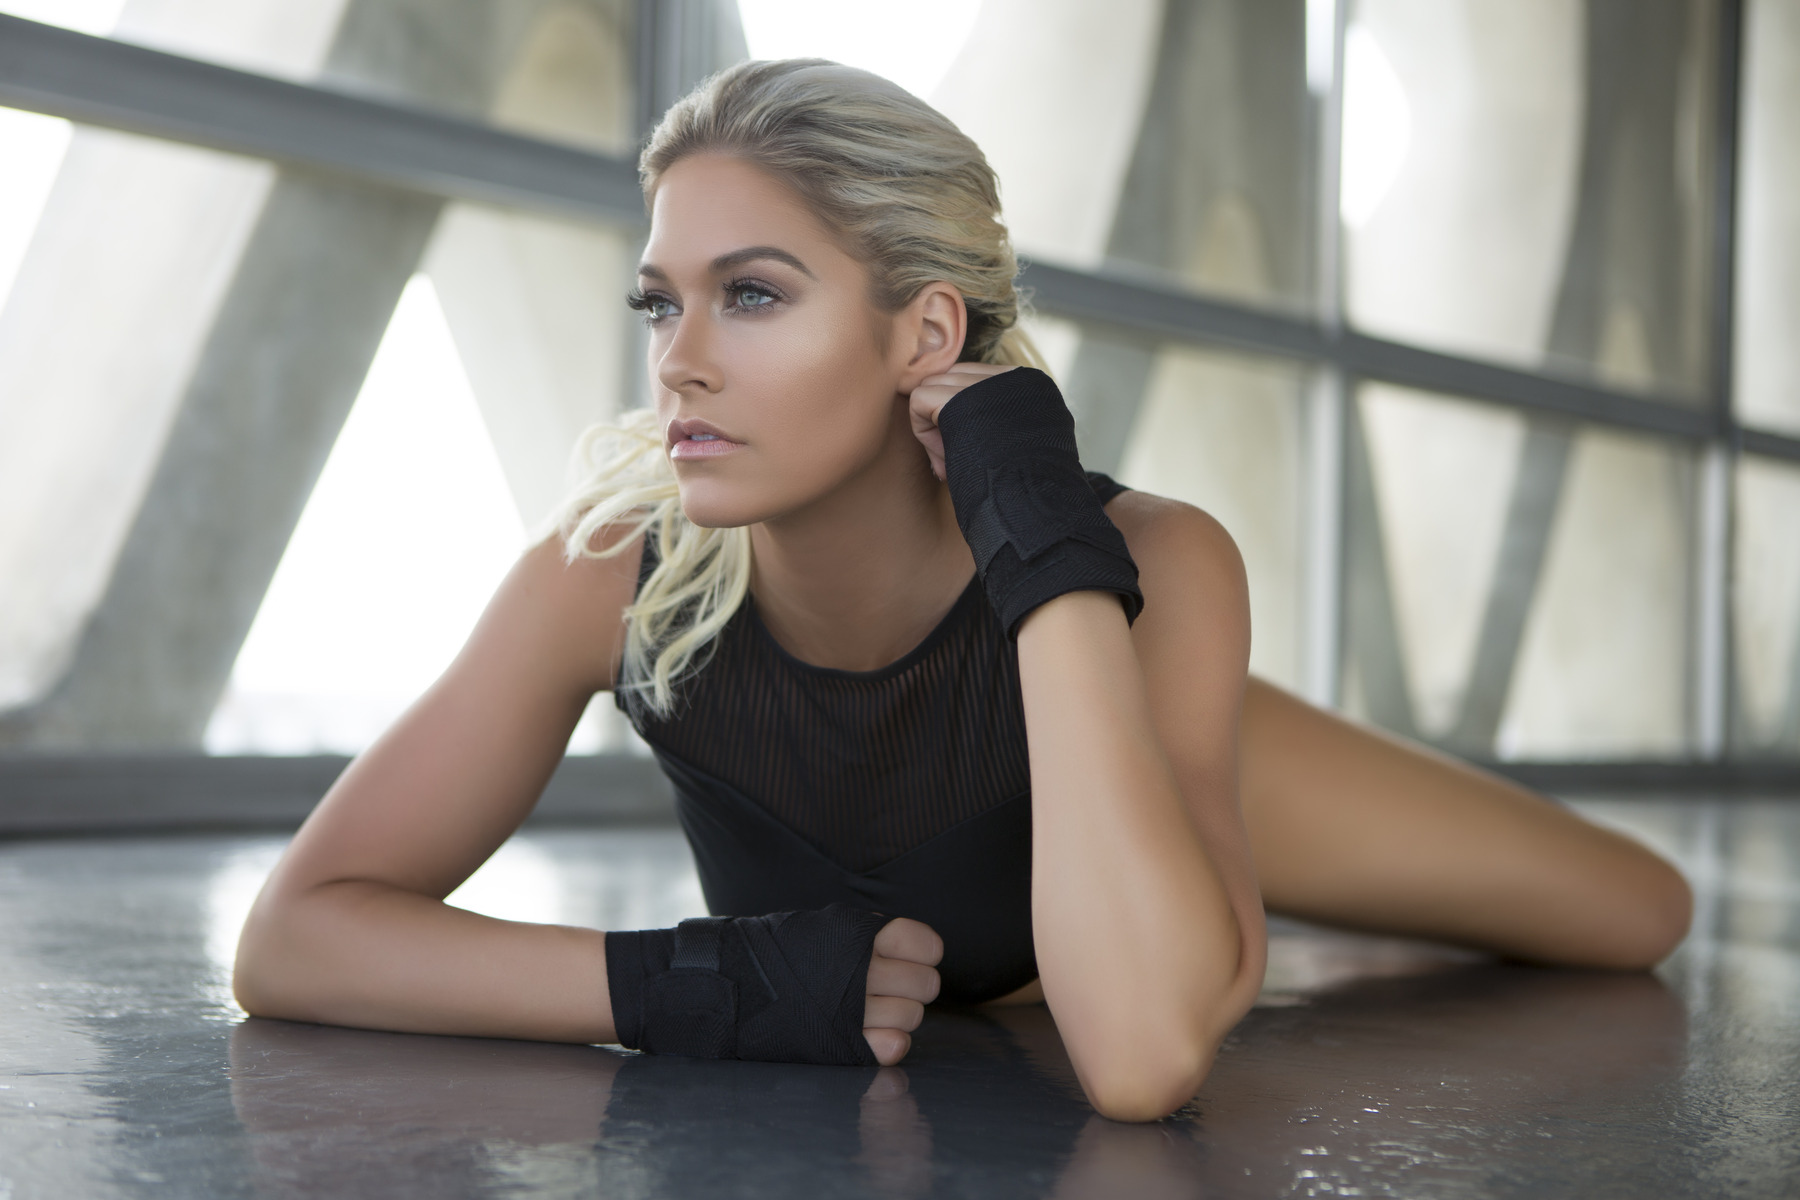 Barbie Blank photos